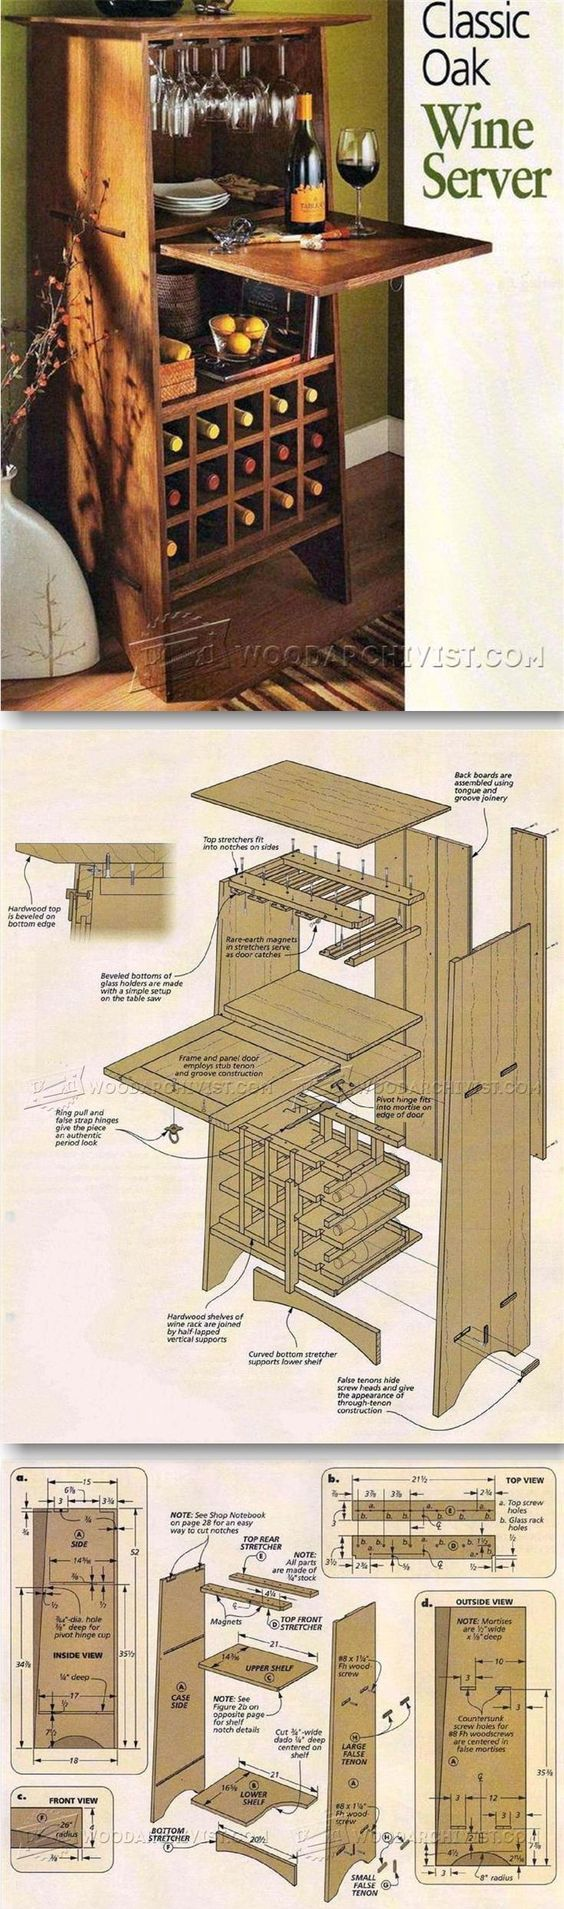 Classic Oak Wine Server Plans - Furniture Plans and Projects | WoodArchivist.com